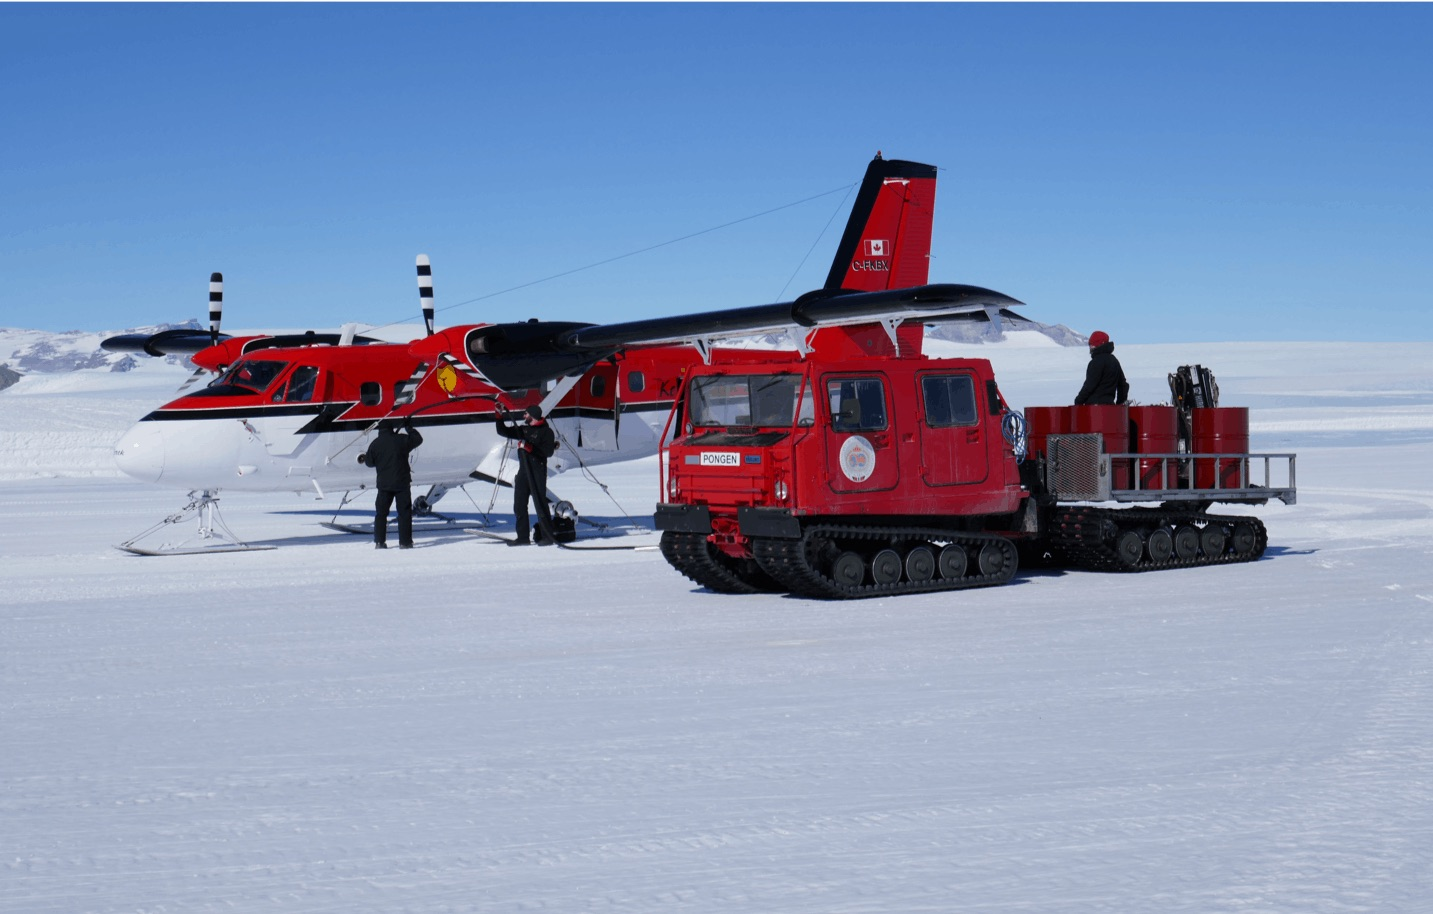 A Canadian Twin Otter is refeuled at Troll Station via 200 liter fuel drums